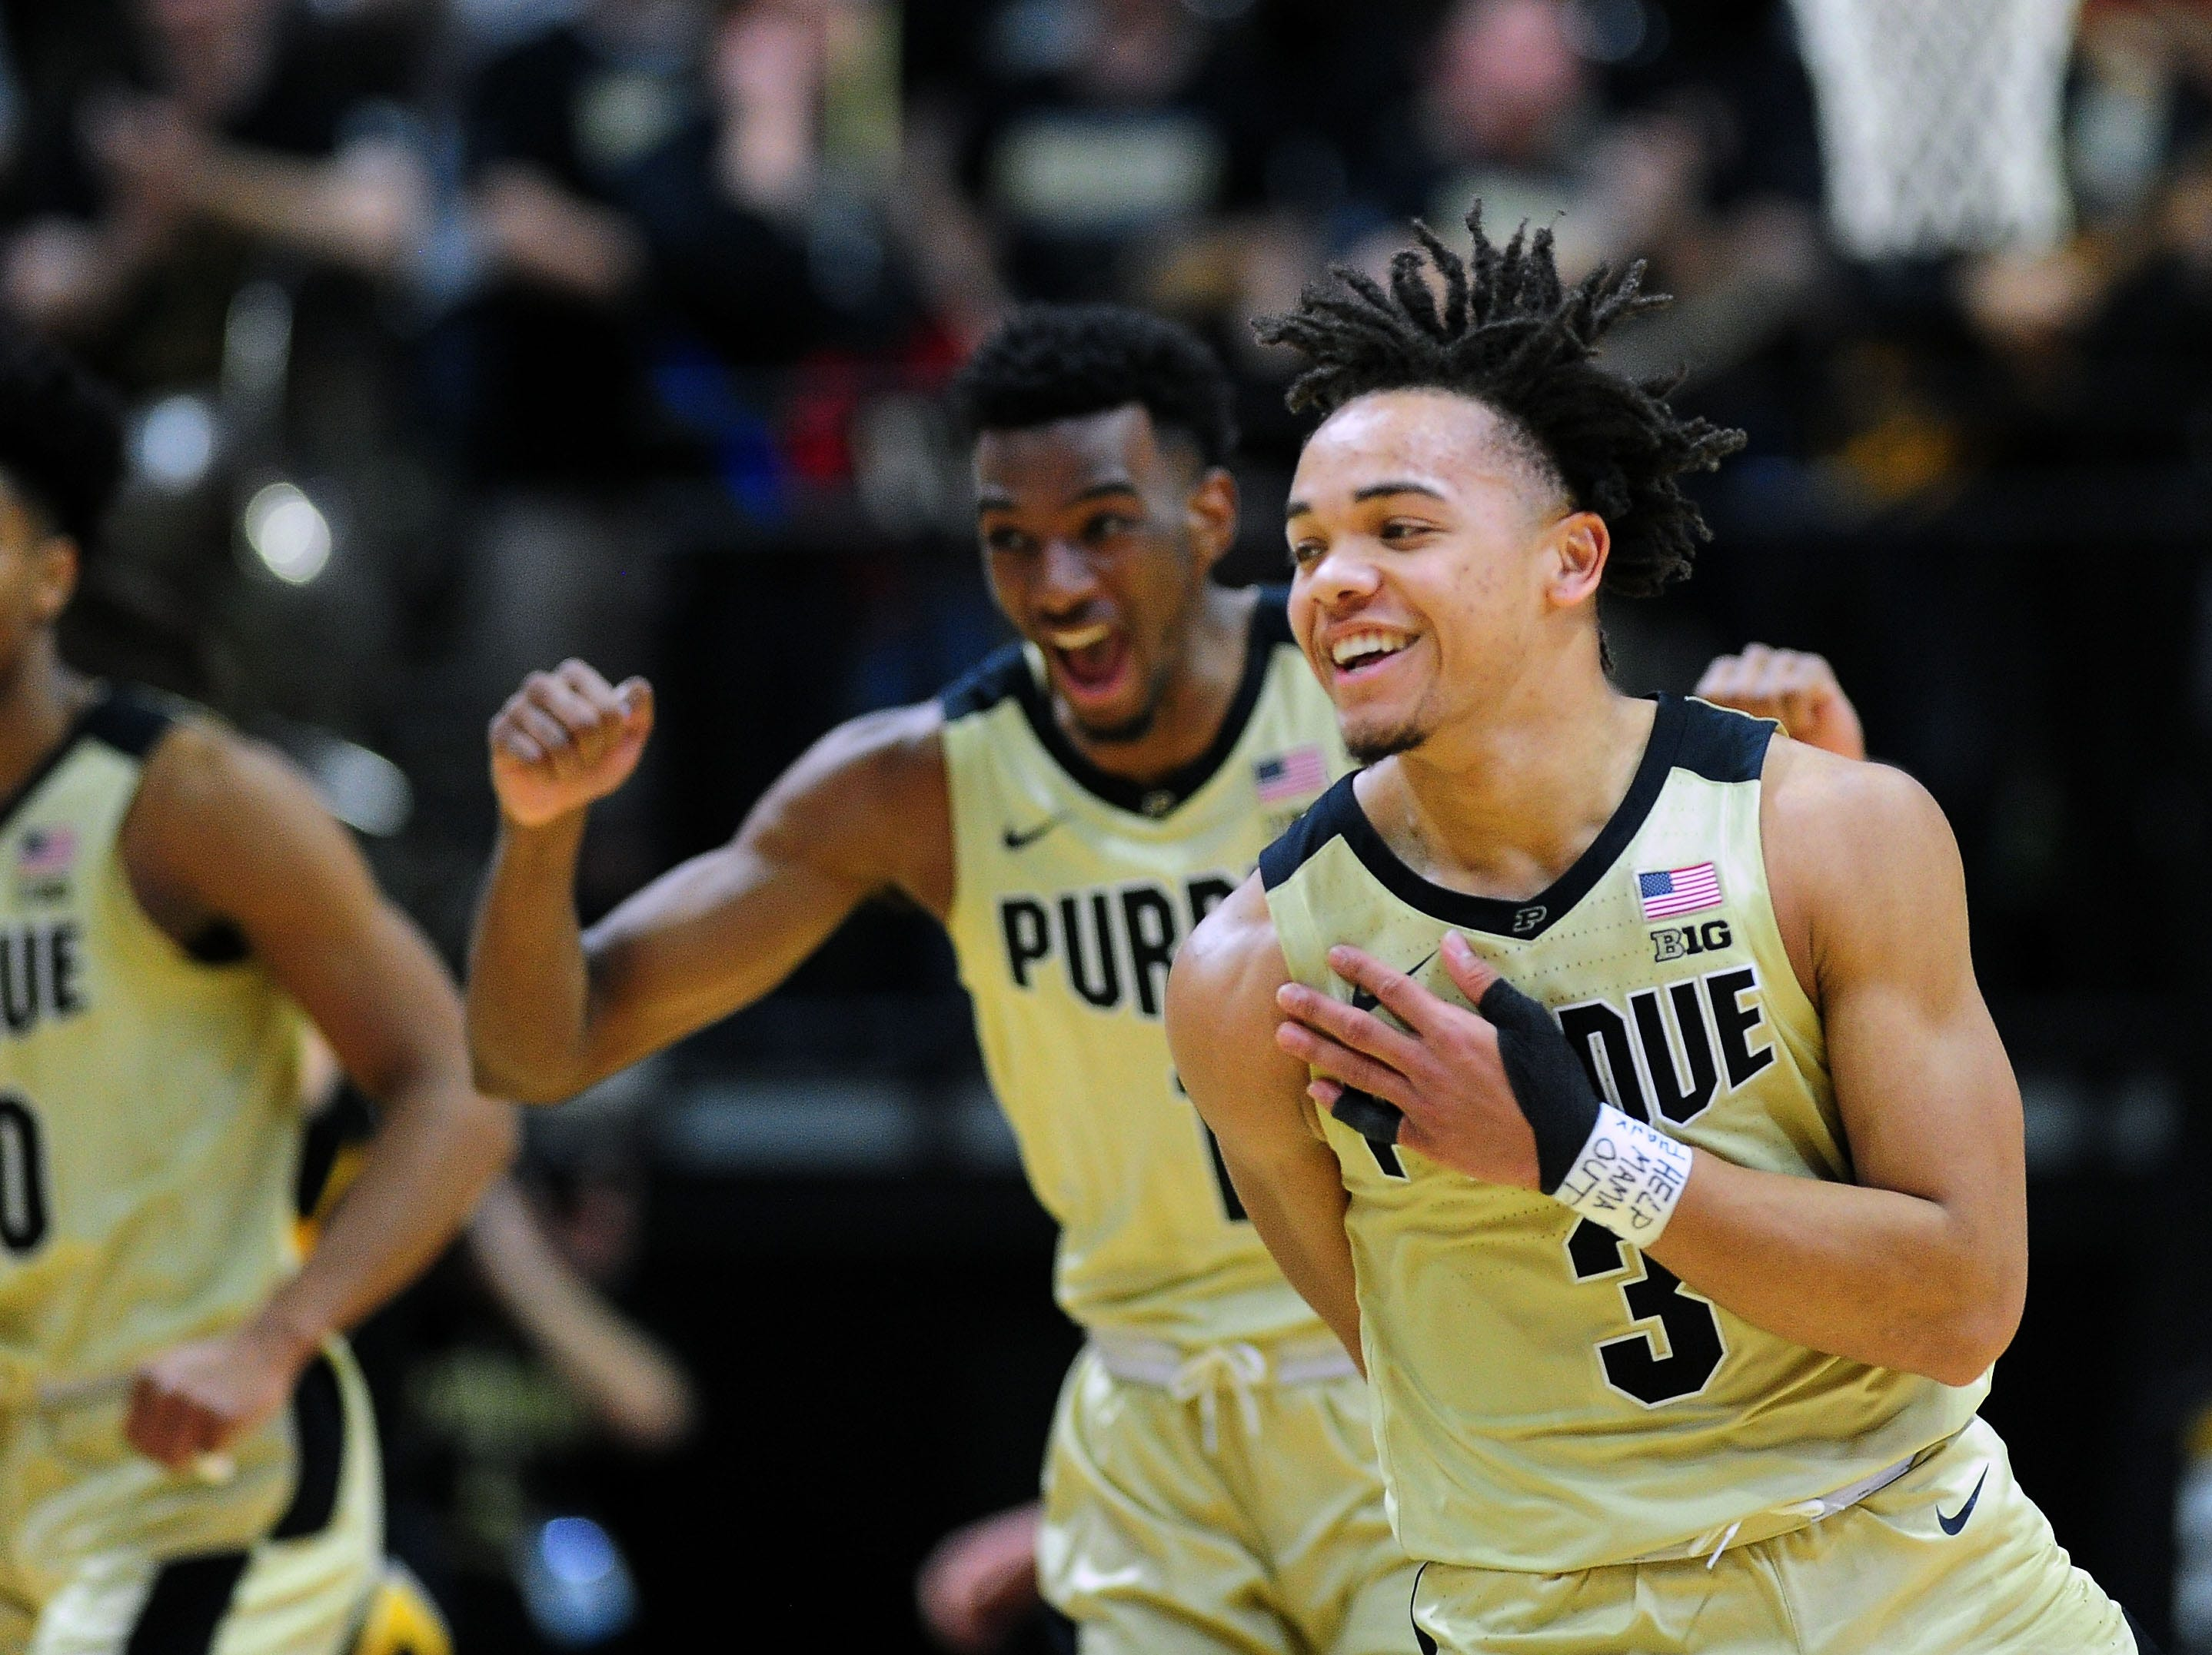 Jan 3, 2019; West Lafayette, IN, USA; Purdue Boilermakers guard Carsen Edwards (3) celebrates along with forward Aaron Wheeler (1) against the Iowa Hawkeyes in the second half at Mackey Arena. Mandatory Credit: Thomas J. Russo-USA TODAY Sports